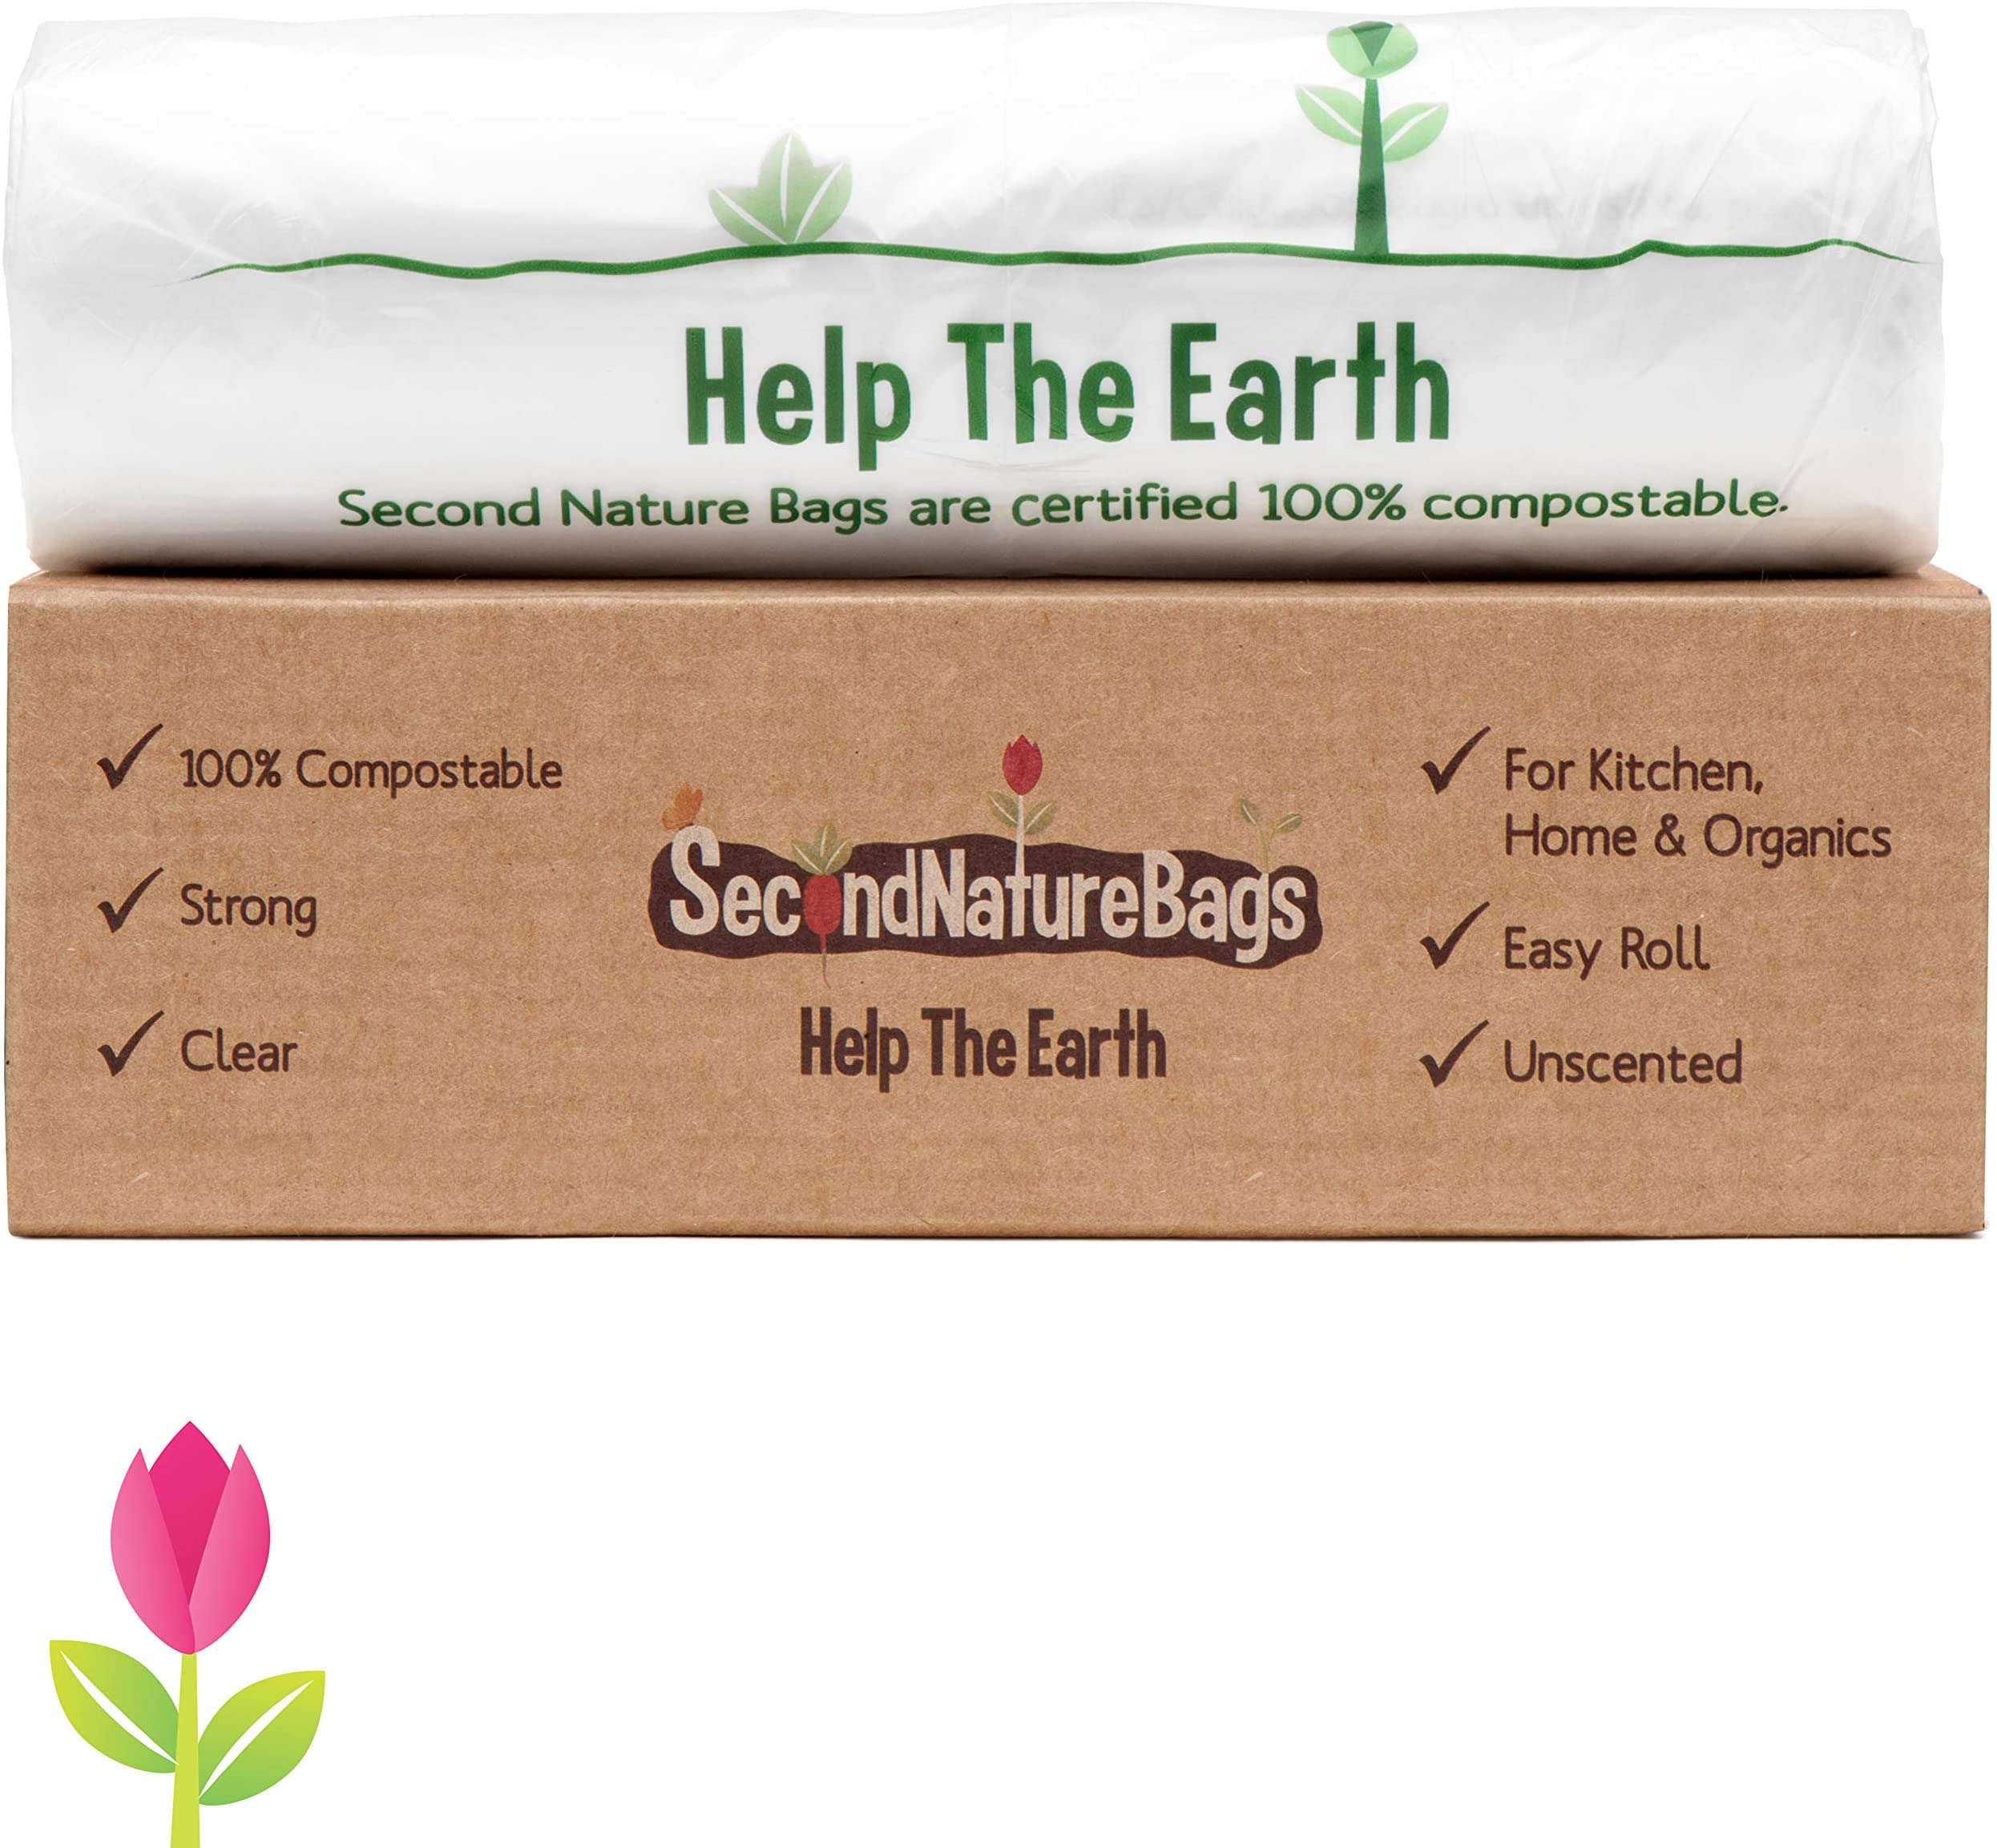 Second Nature Bags, Premium Certified 100% Compostable, 3 Gallon, 100 Bags, Extra Thick 0.75 Mils, Small Kitchen Food Scraps & Home Trash Bags